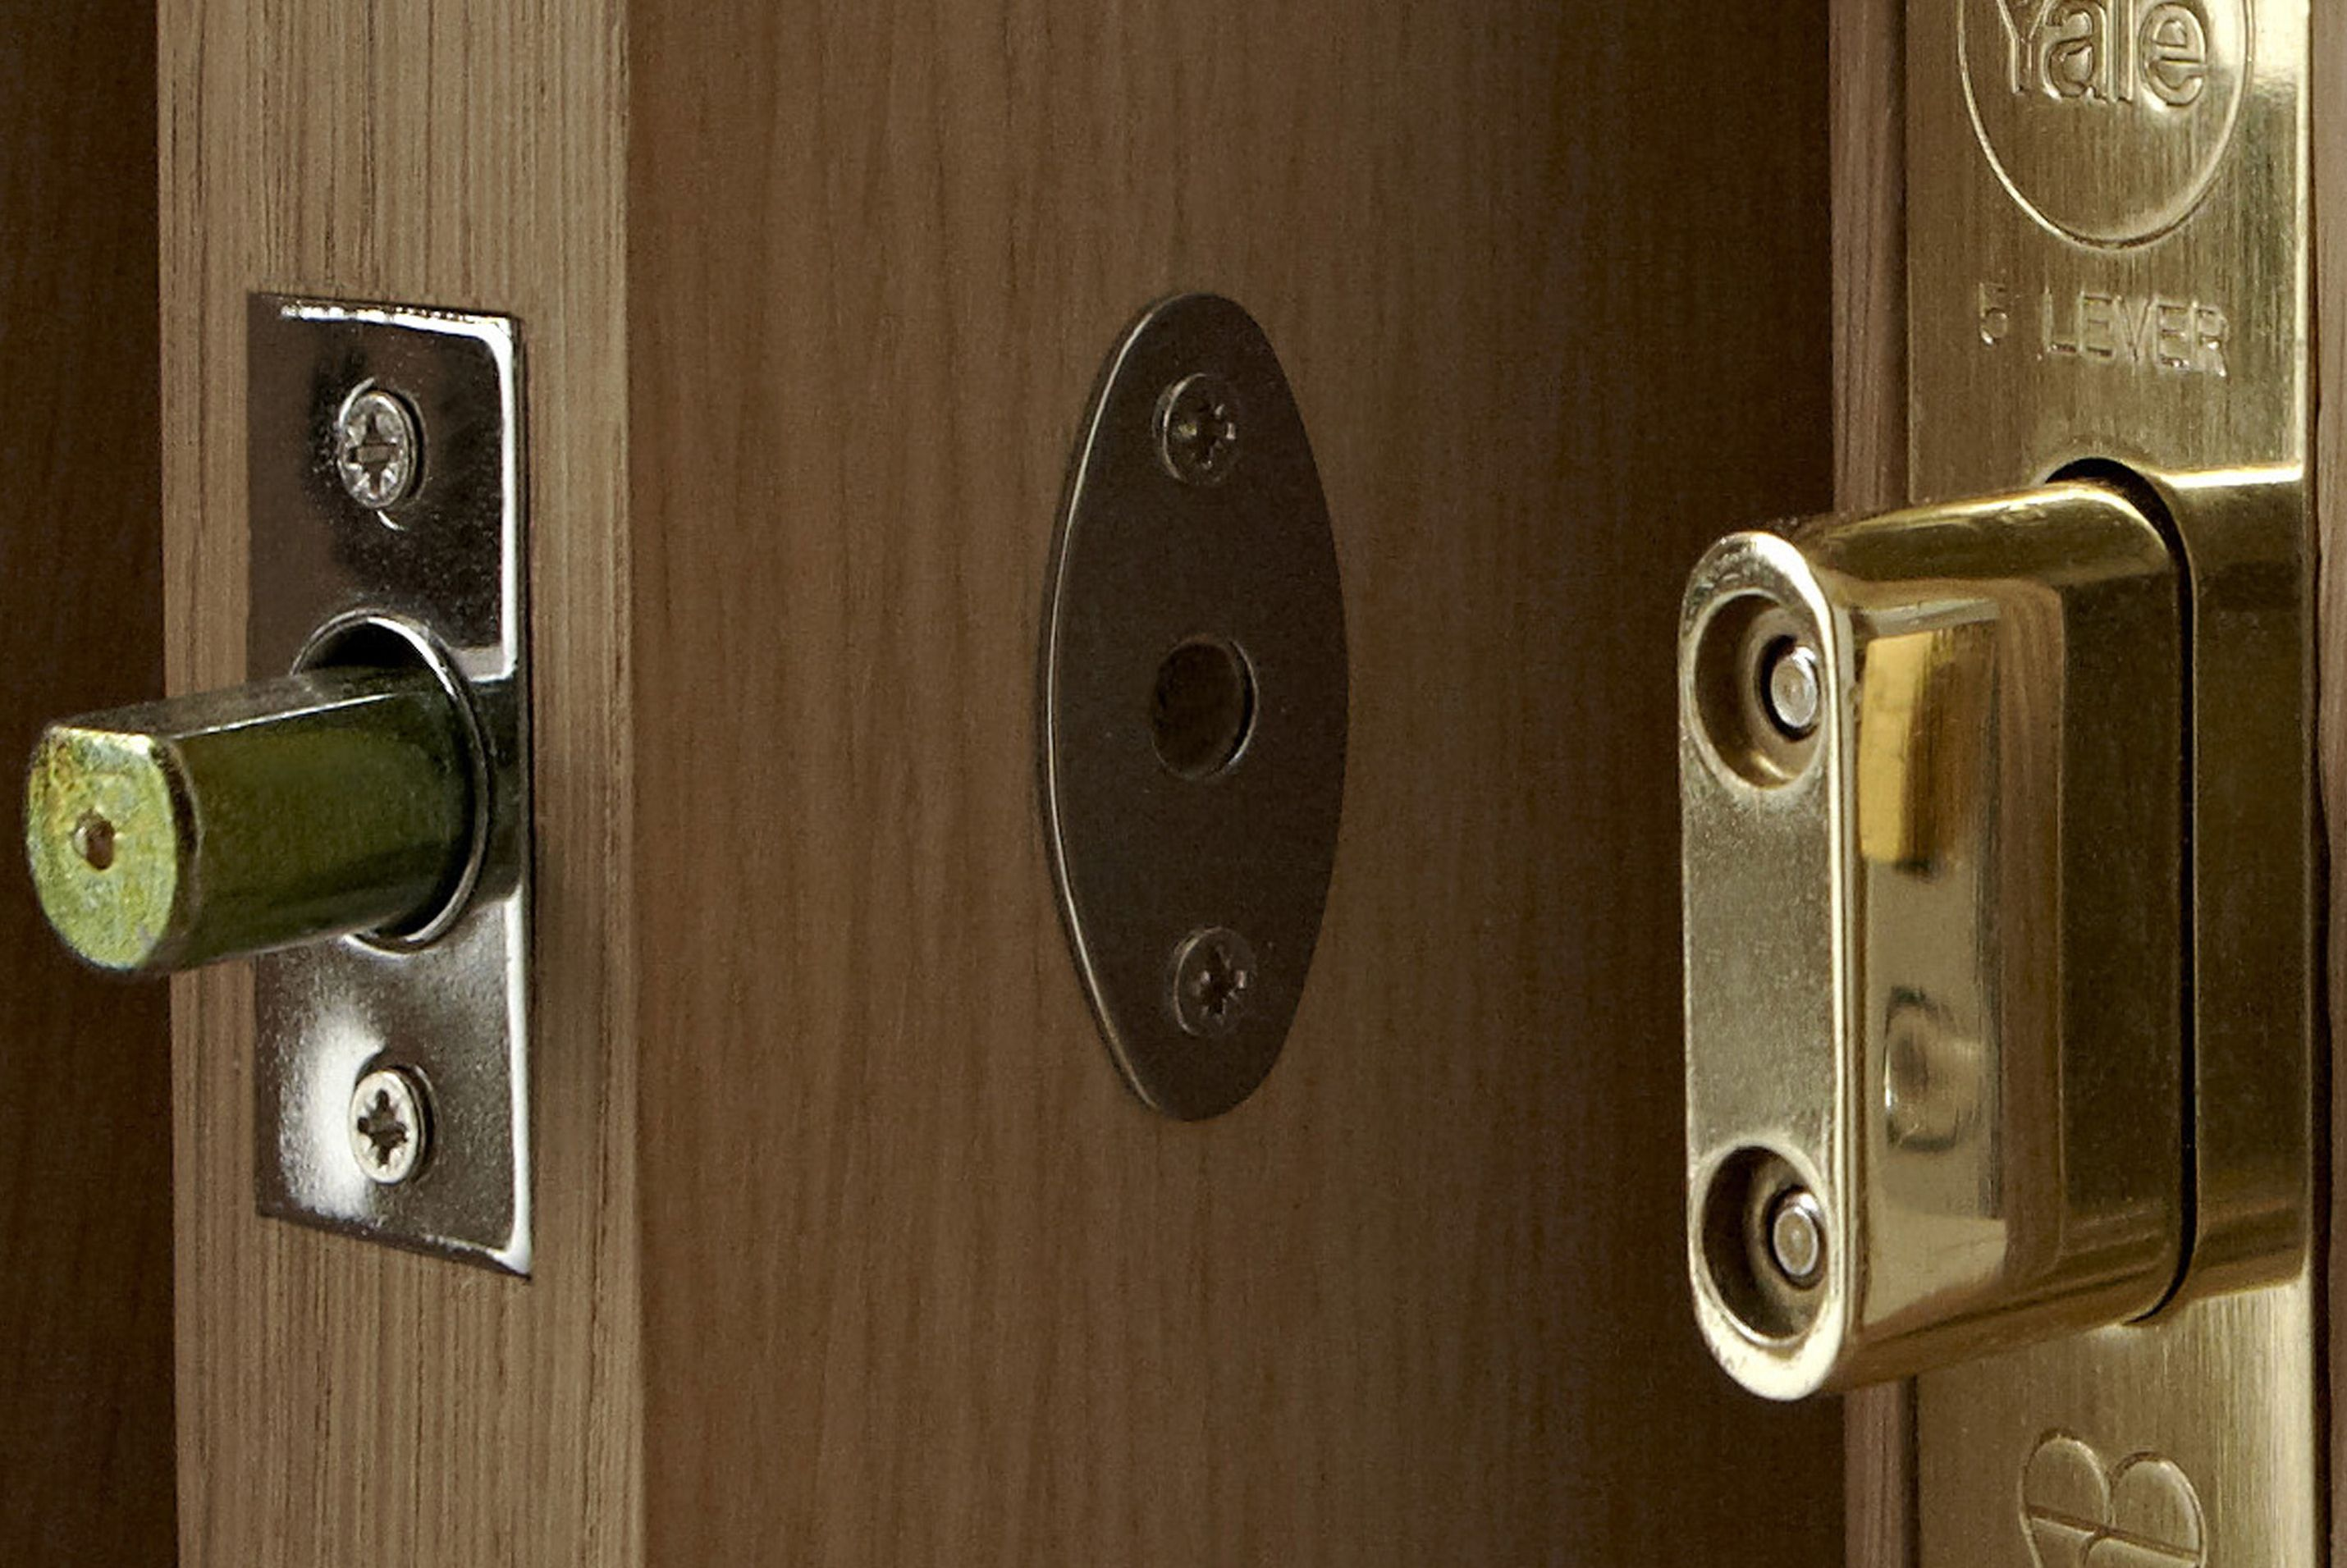 Door U0026 Window Locks Buying Guide